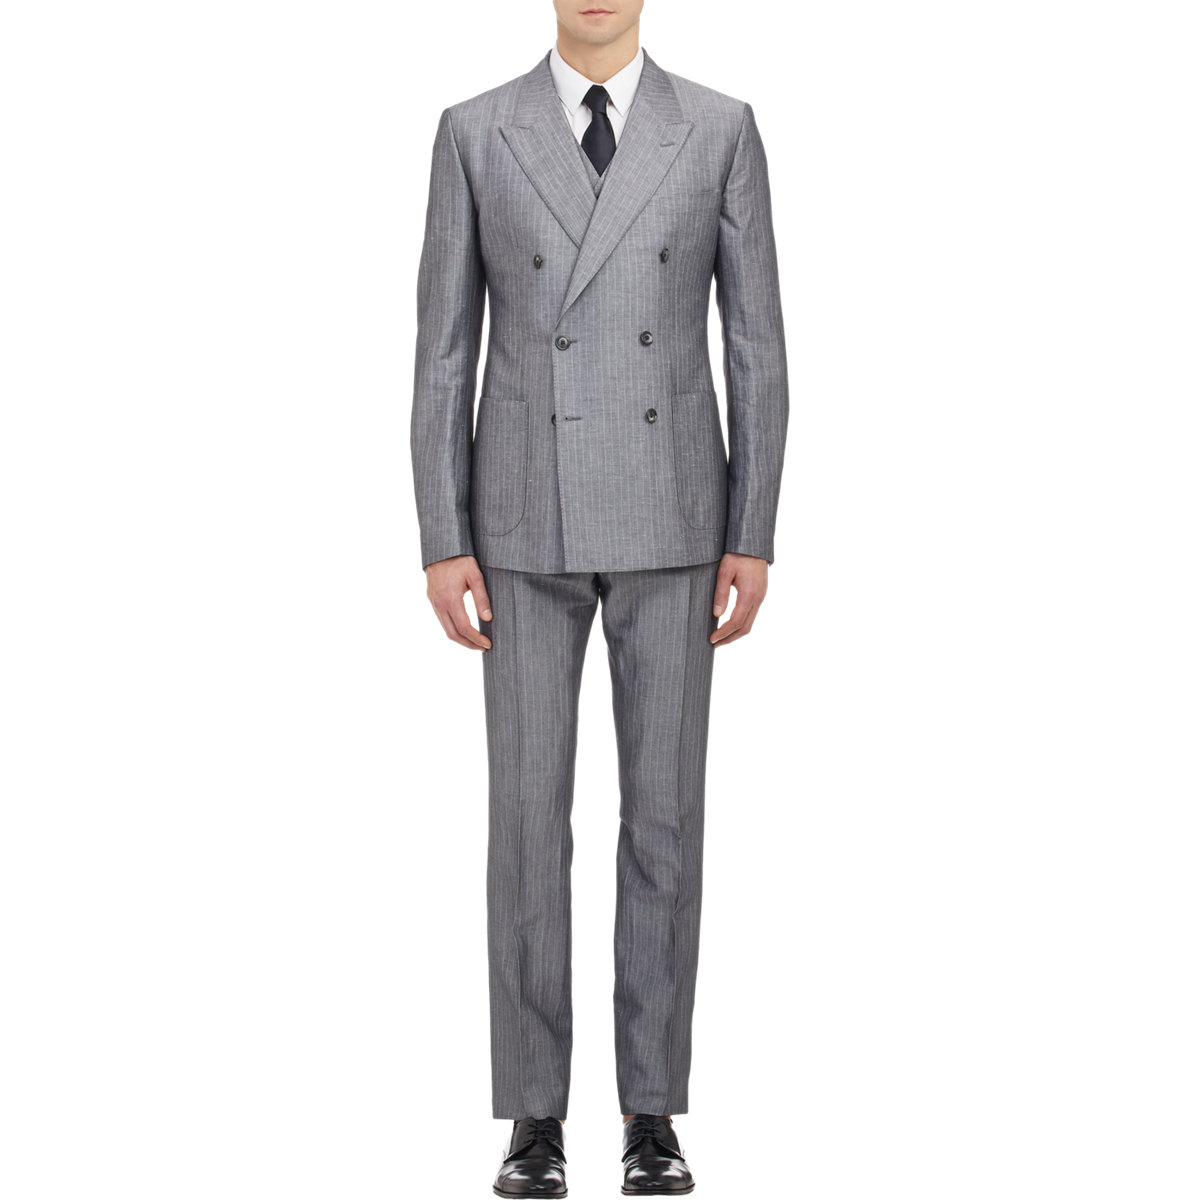 3 Piece and Vested Suits. Reasonably Priced Three Piece Suit Mens Vested & Pinstripe Suits When you need a quality 3 piece suit or pinstripe suit for your wardrobe, MensItaly can come to your rescue without a doubt. Our online retailer can accommodate all of your three piece pinstripe suit needs easily.